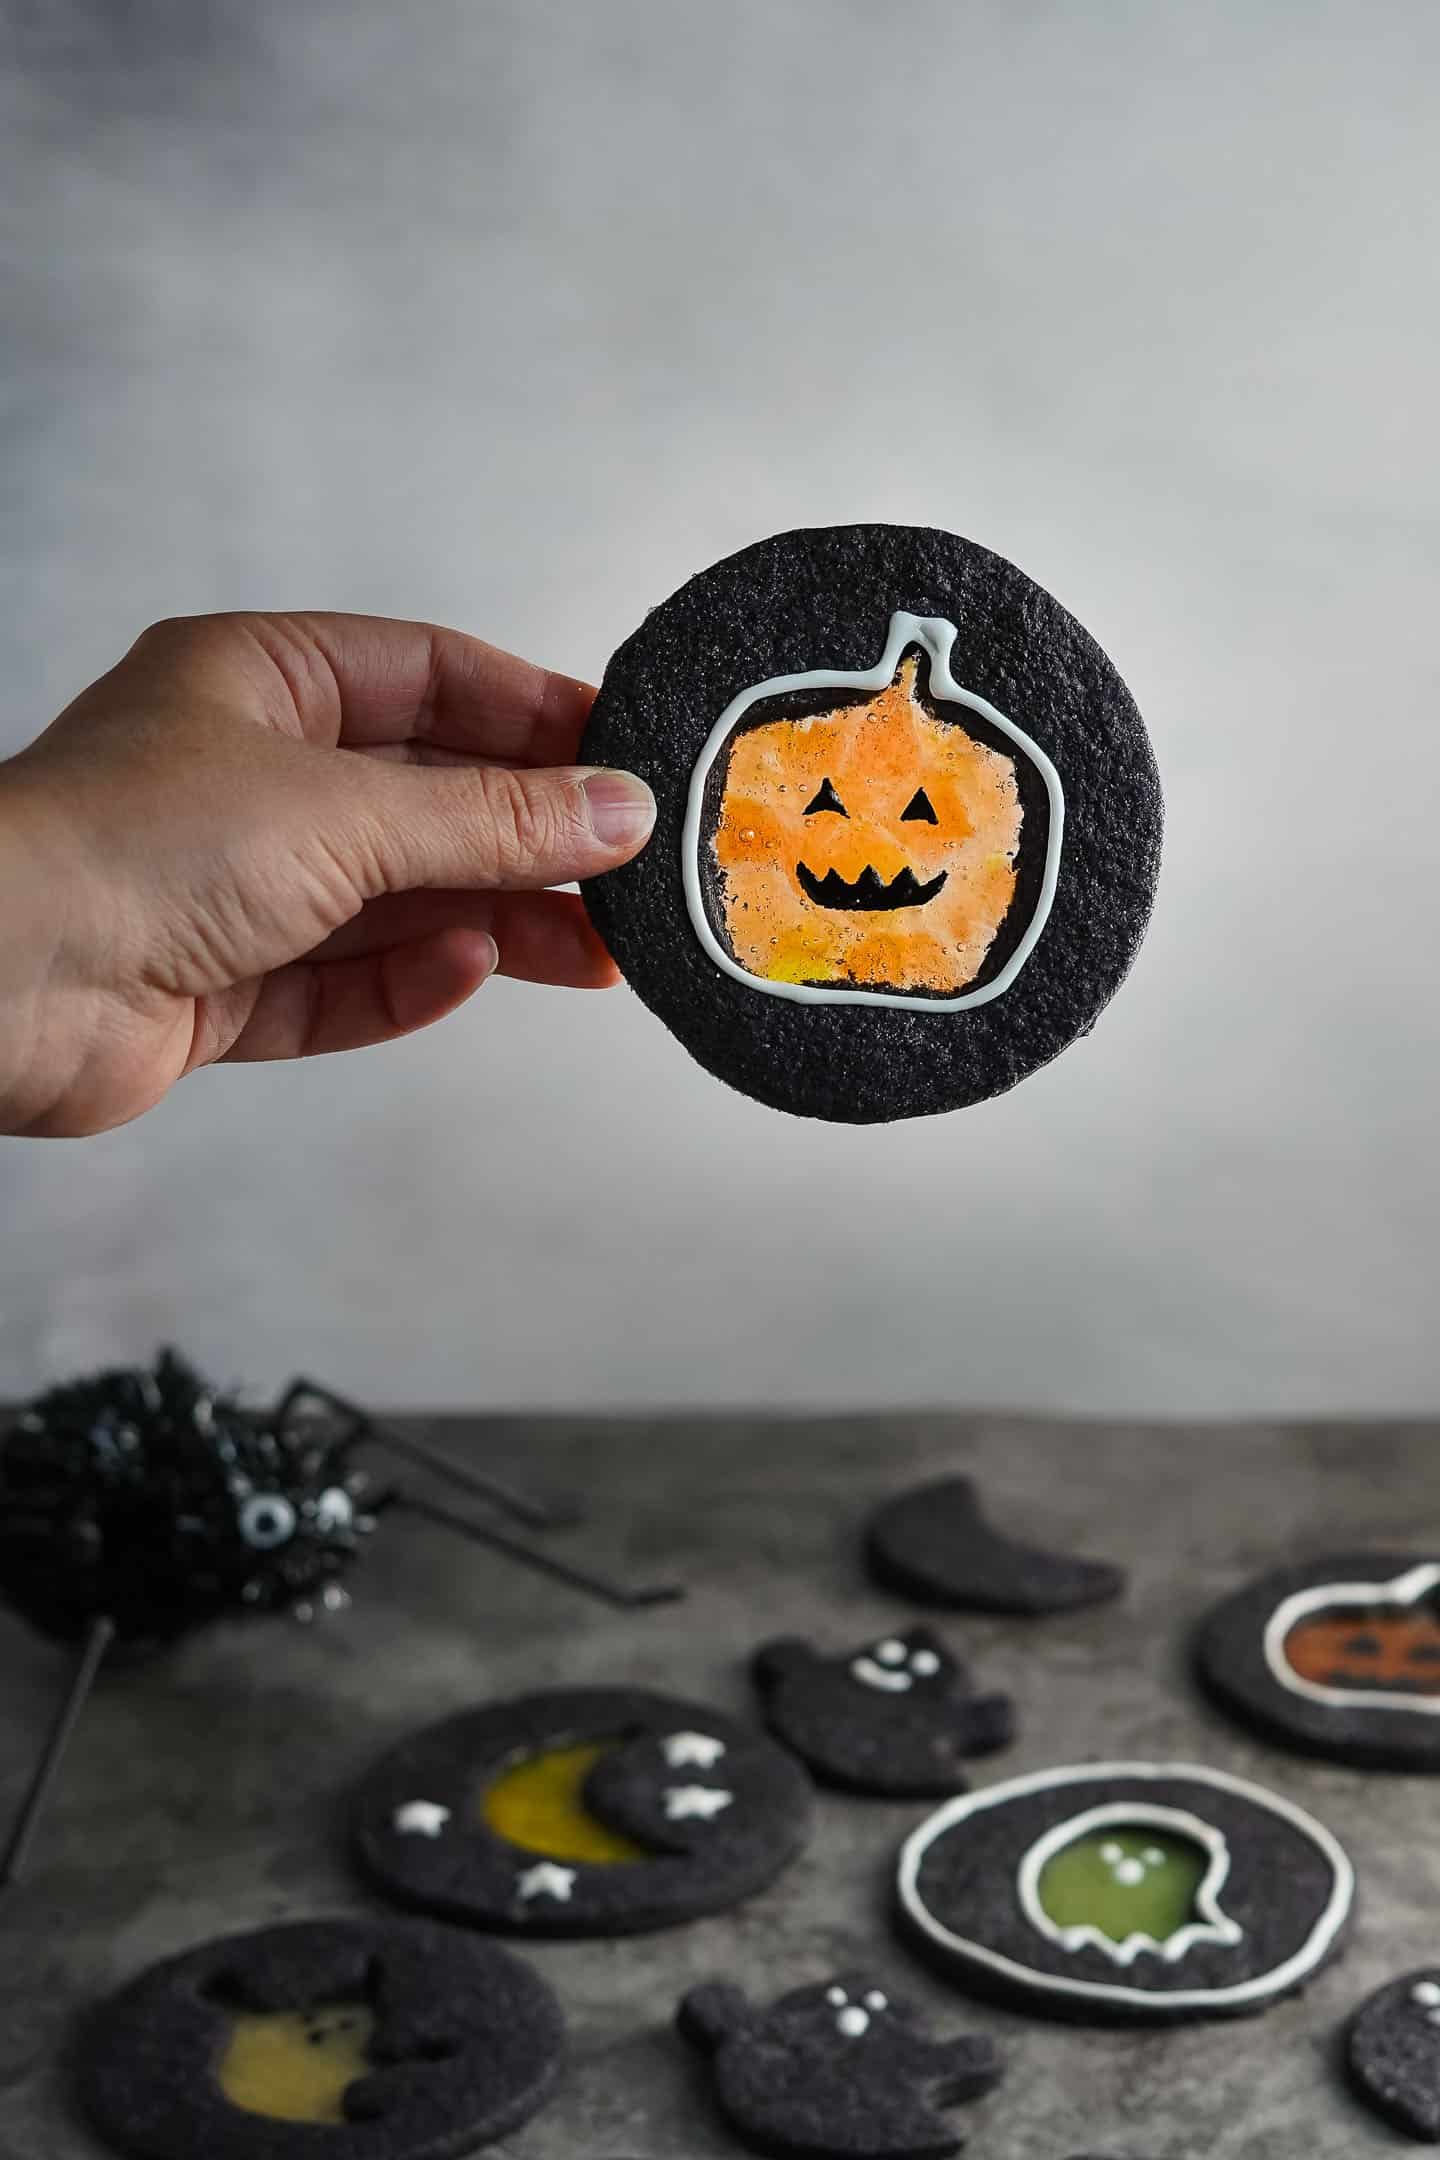 Hand holding black cookie with pumpkin design in the center